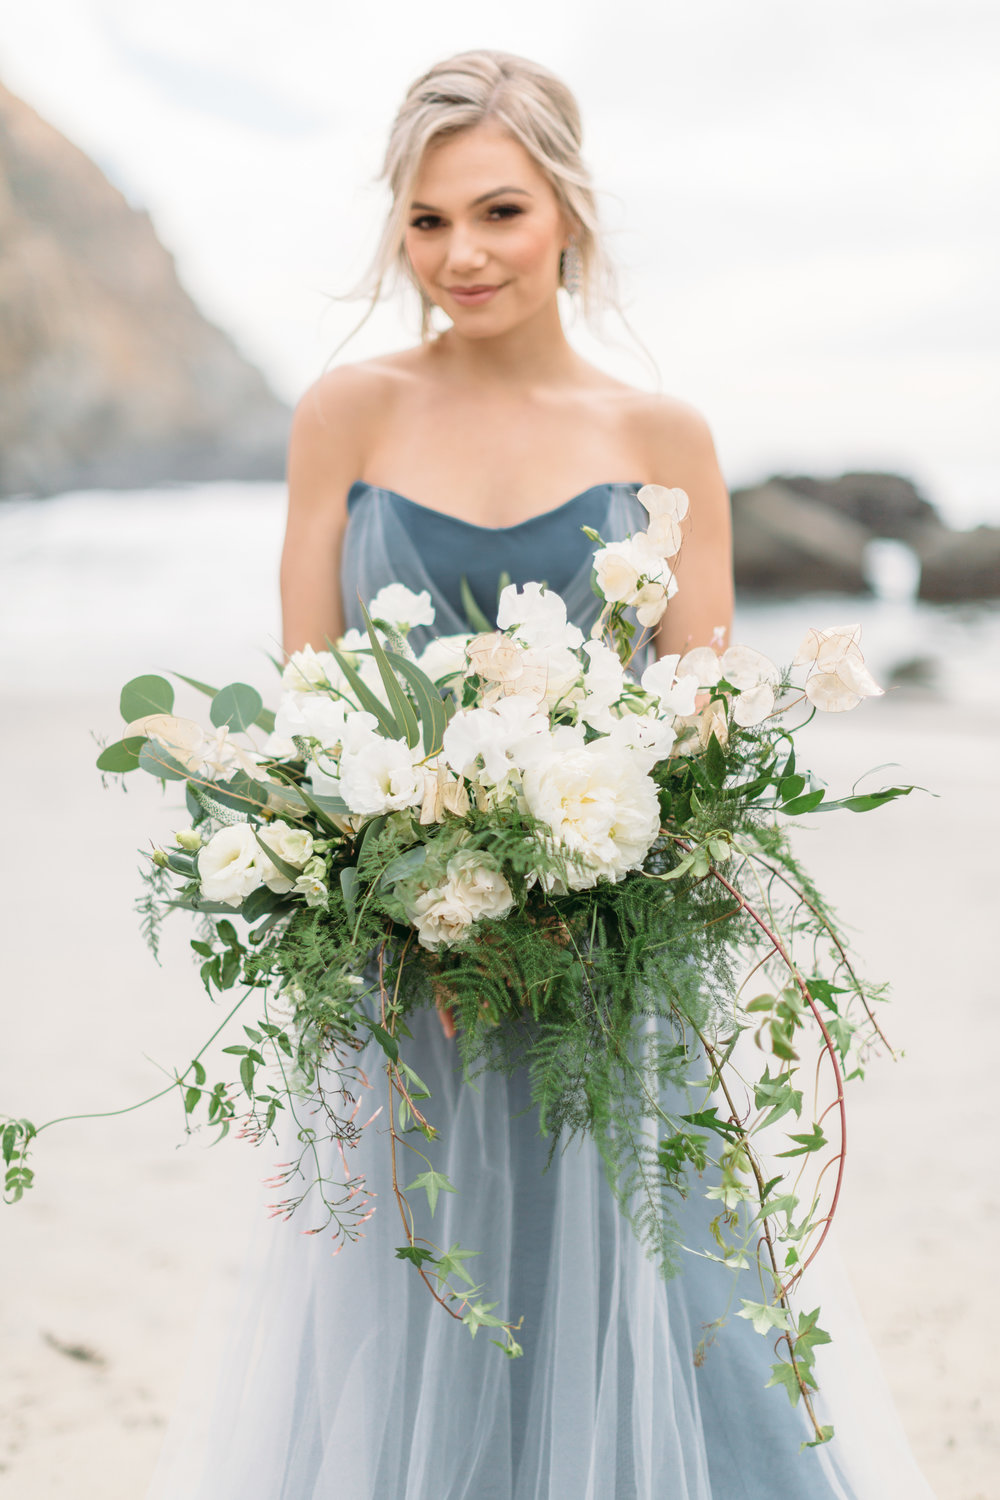 big-sur-wedding-tara-latour-19.jpg